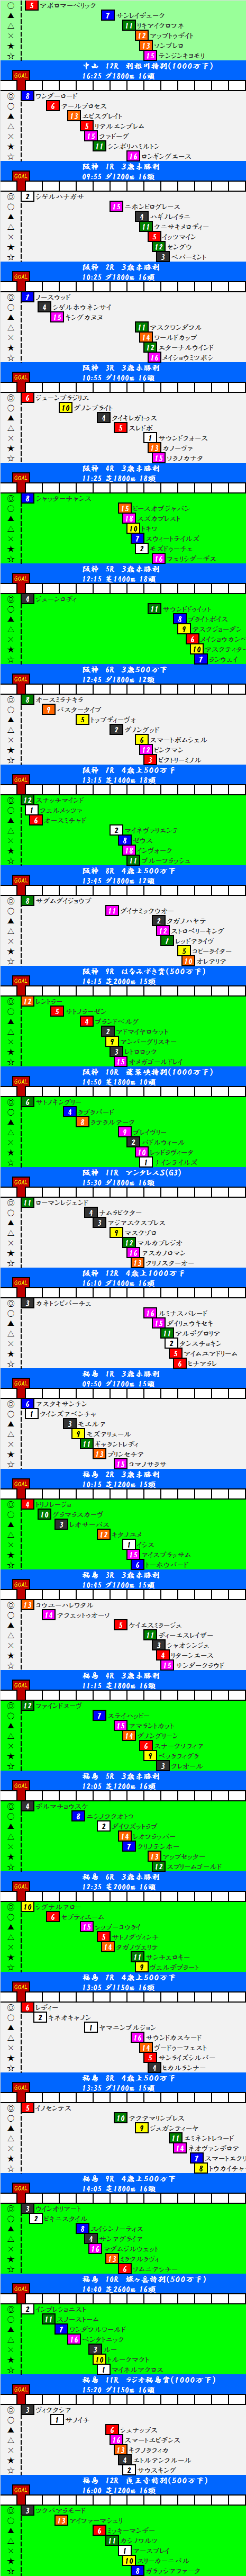 2015041802.png